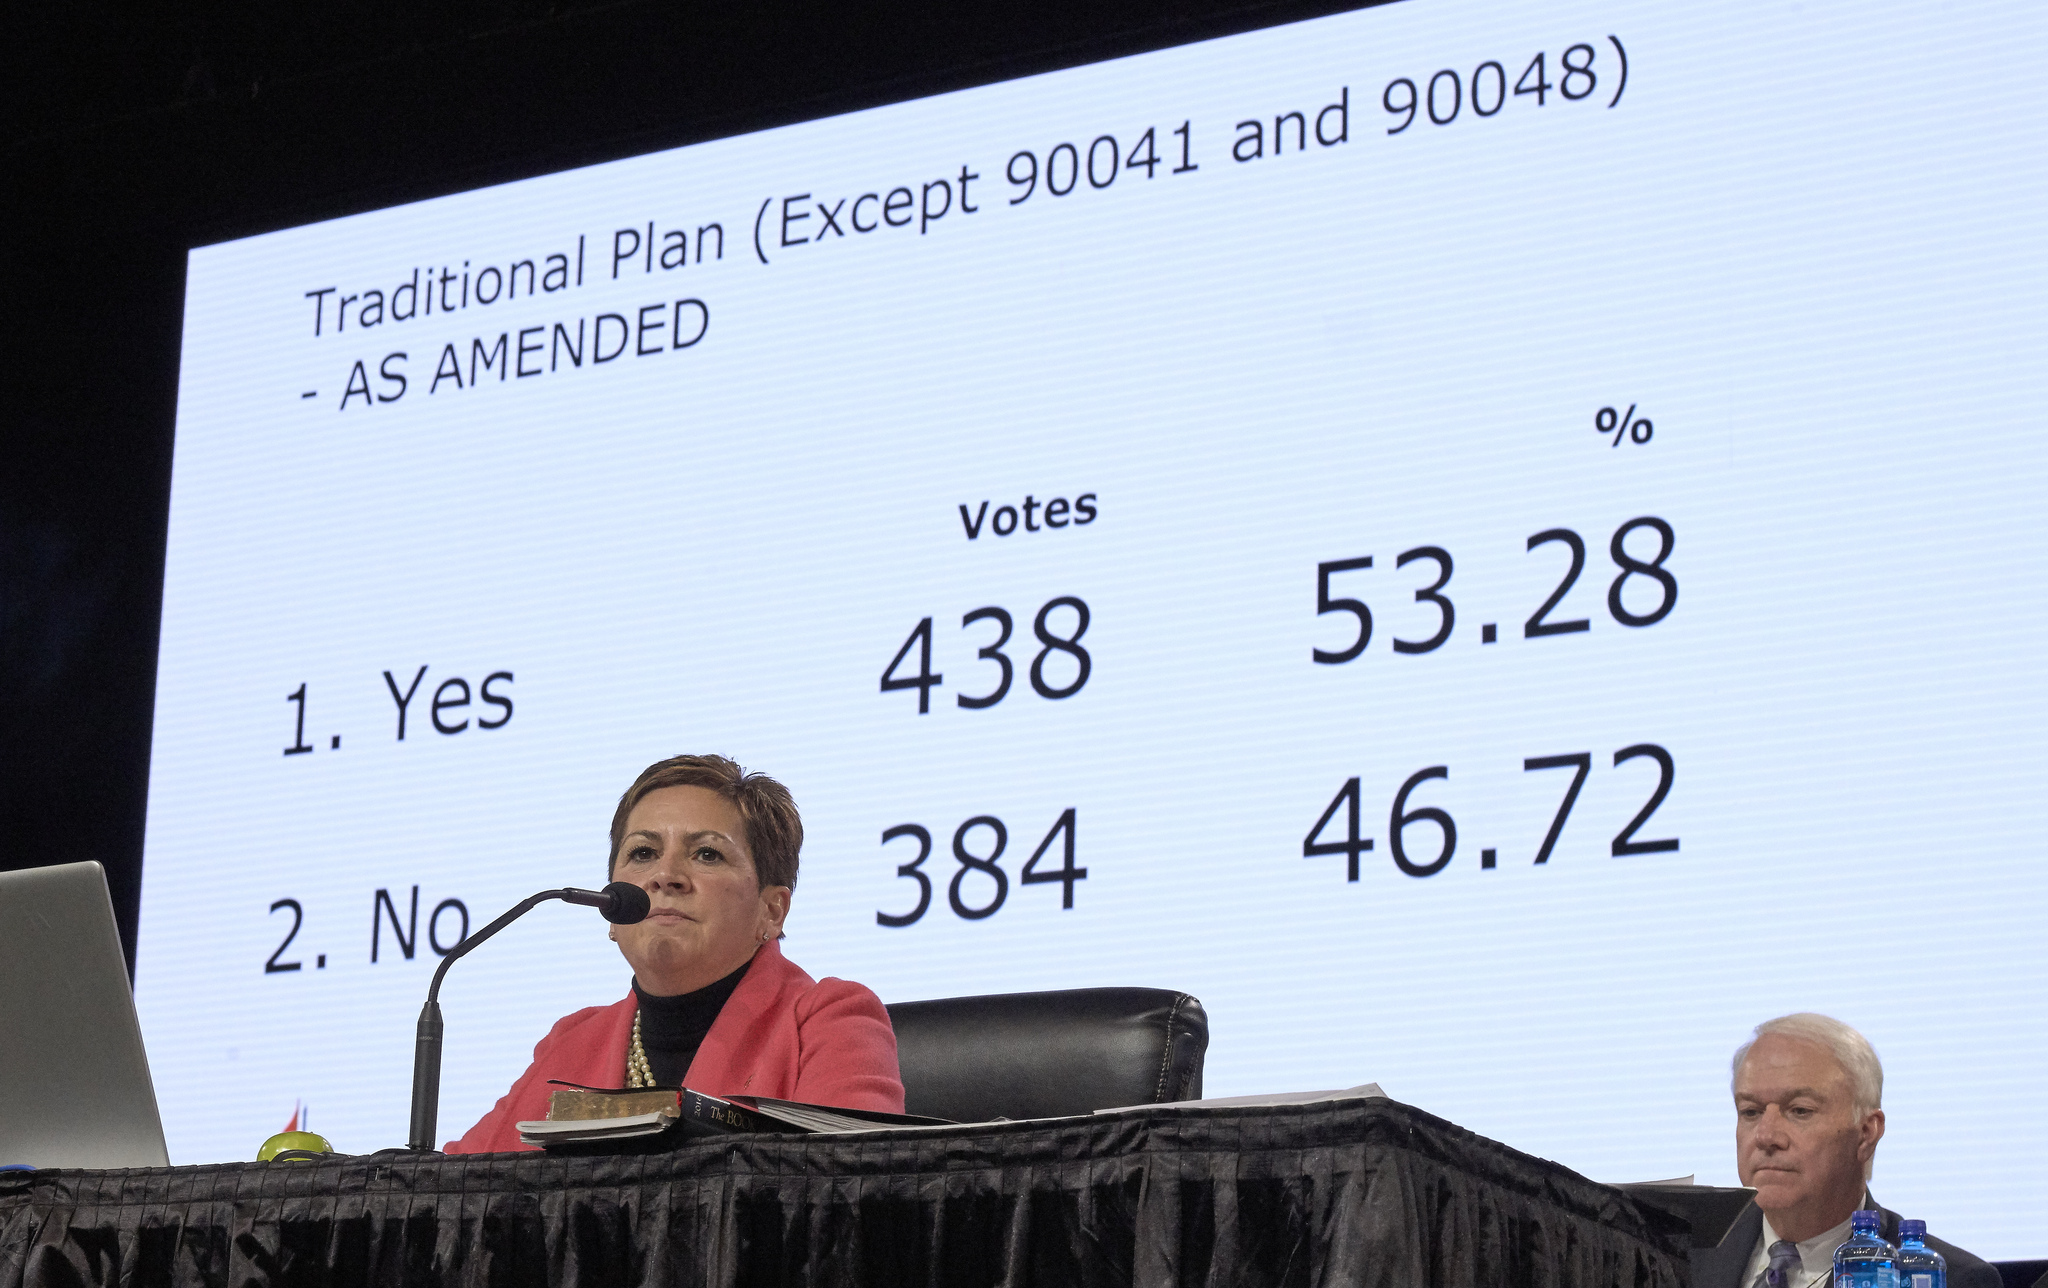 Bishop Cynthia Fierro Harvey observes the results from a Feb. 26 vote for the Traditional Plan, which affirms the church's current bans on ordaining LGBTQ clergy and officiating at or hosting same-sex weddings. Photo by Paul Jeffrey, UMNS.